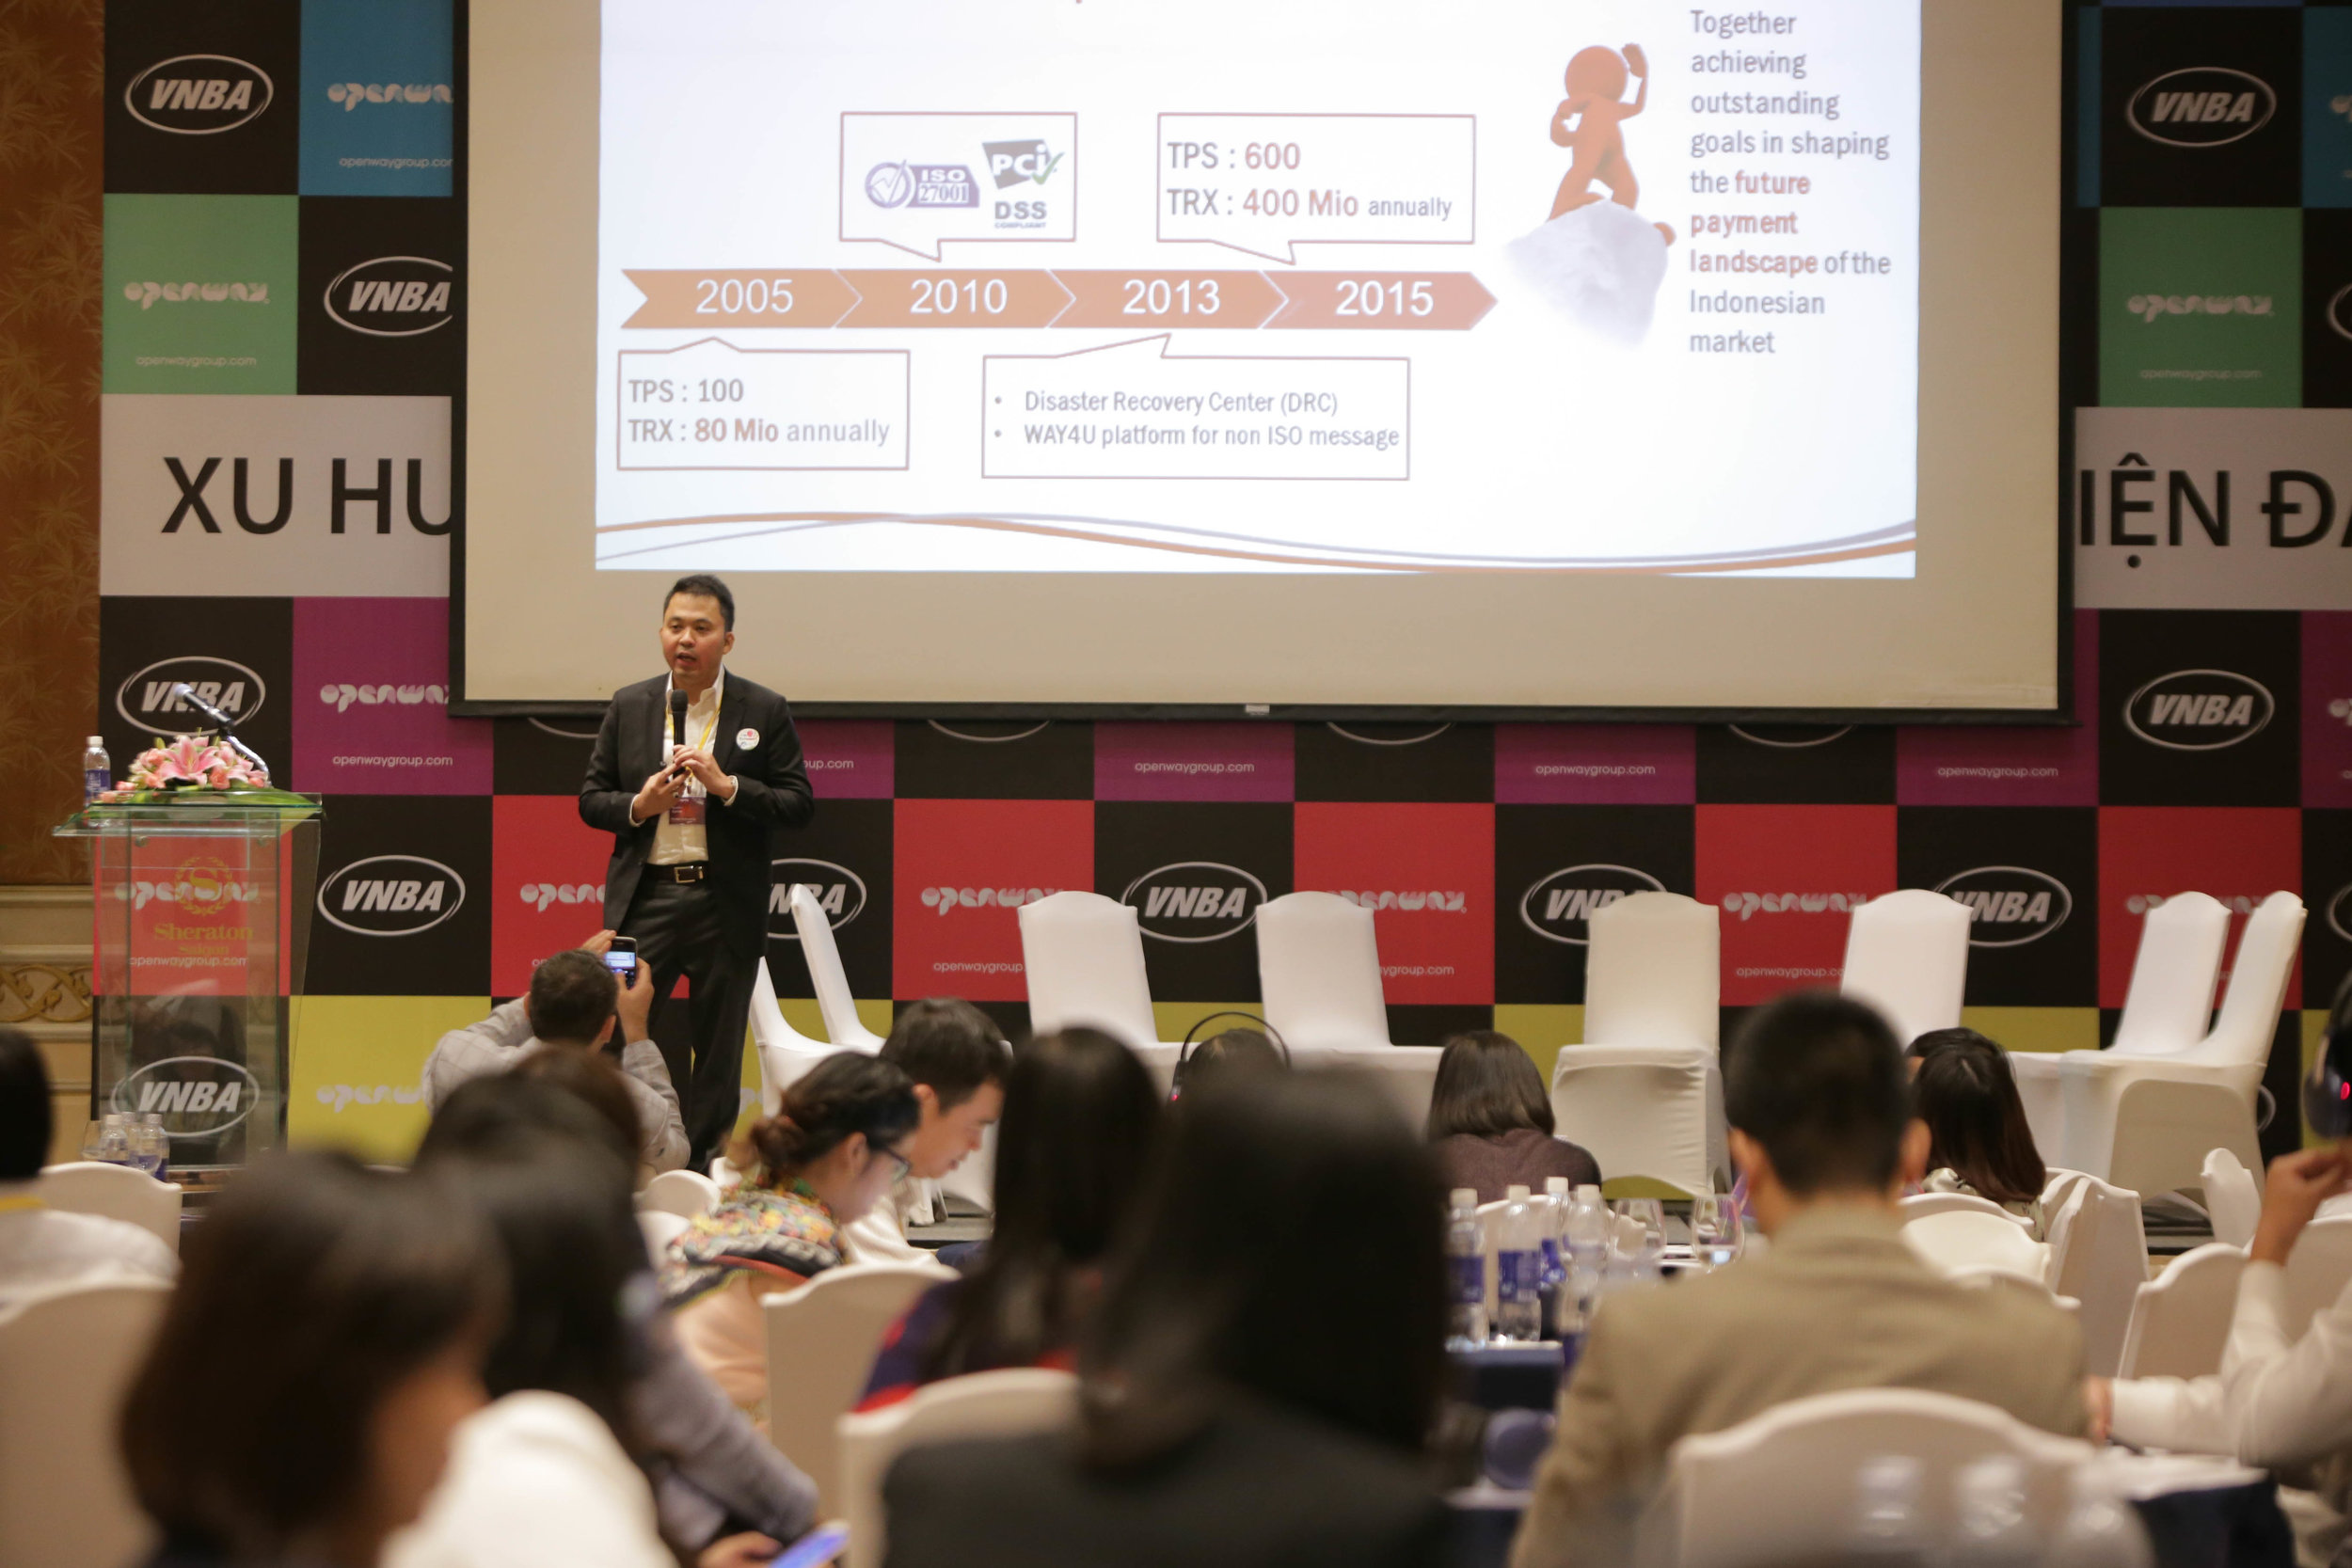 Syaiful Rahim, Finnet's Director of Business & Services speaking about WAY4 Switch at the international conference 'New Trends in Payment Innovations', Vietnam, 2015